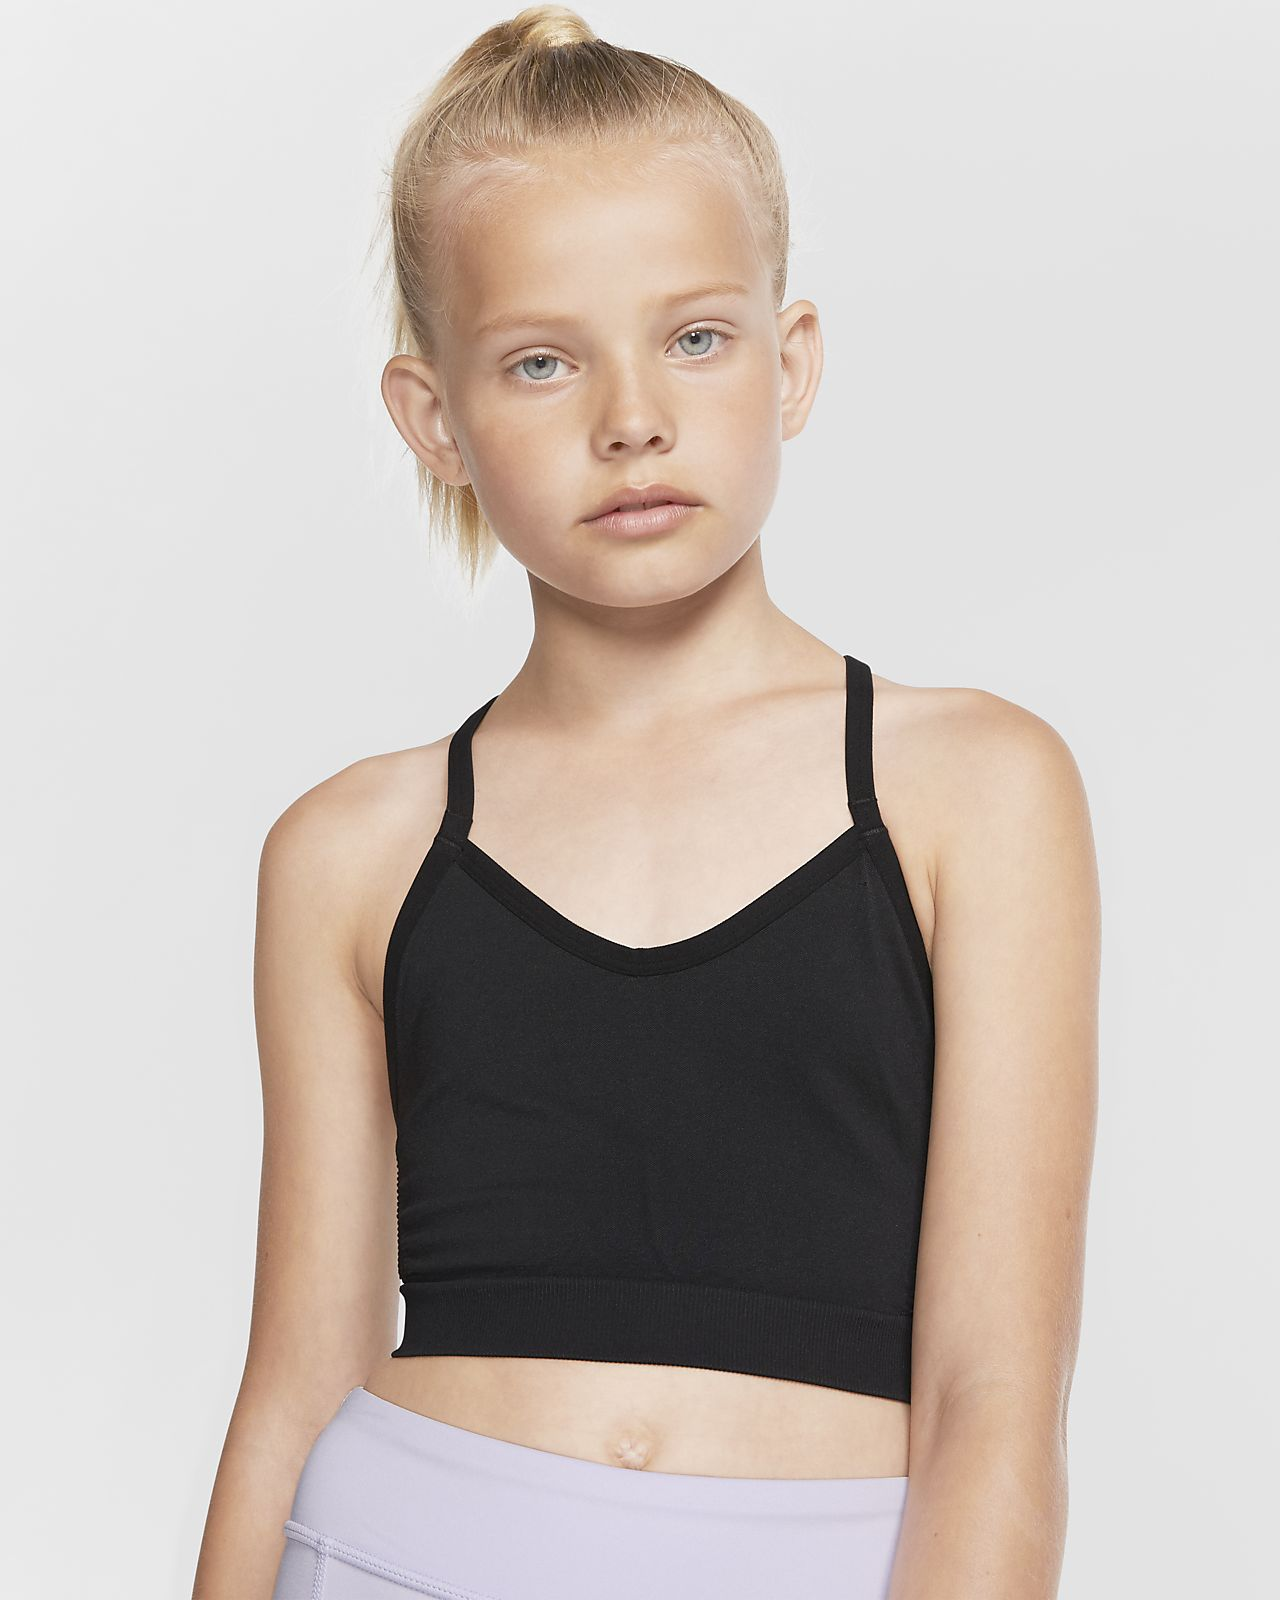 Nike Dri-FIT Girls' Sports Bra